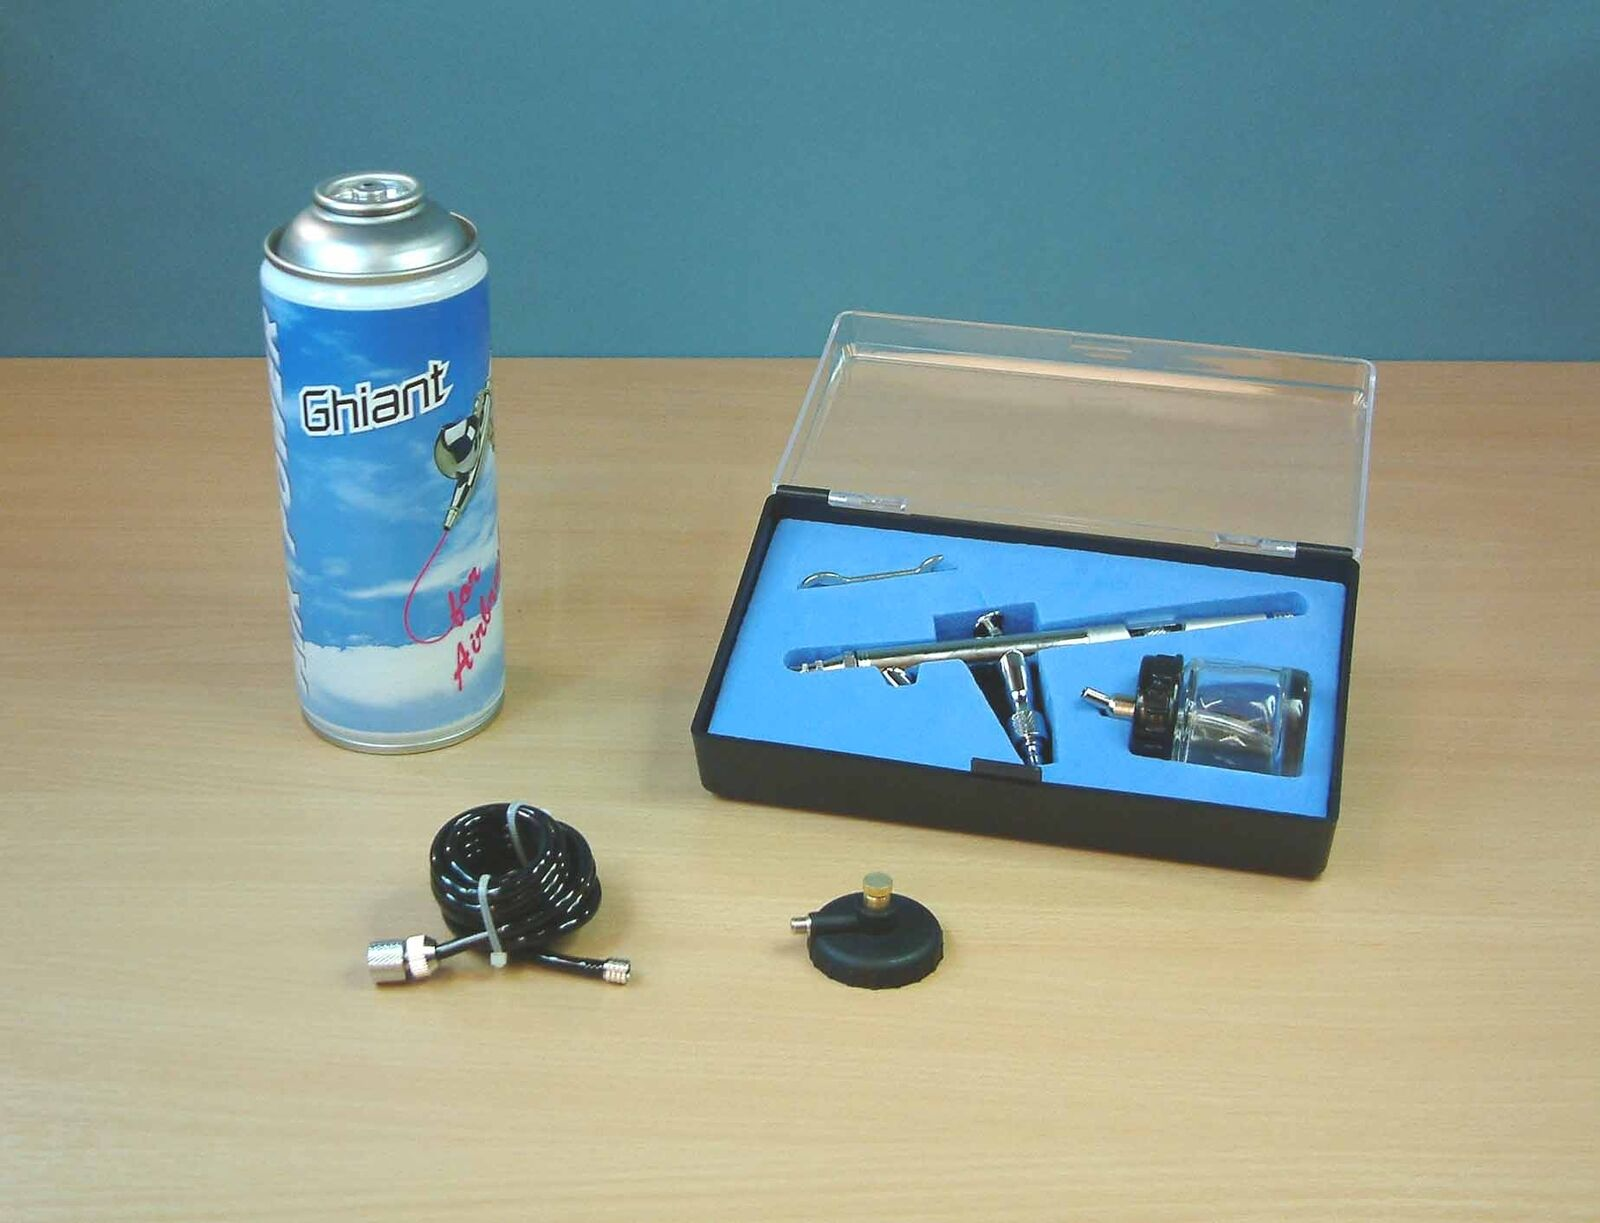 Expo Starter 0.3mm to 40mm Airbrush Set with Propellant AB702